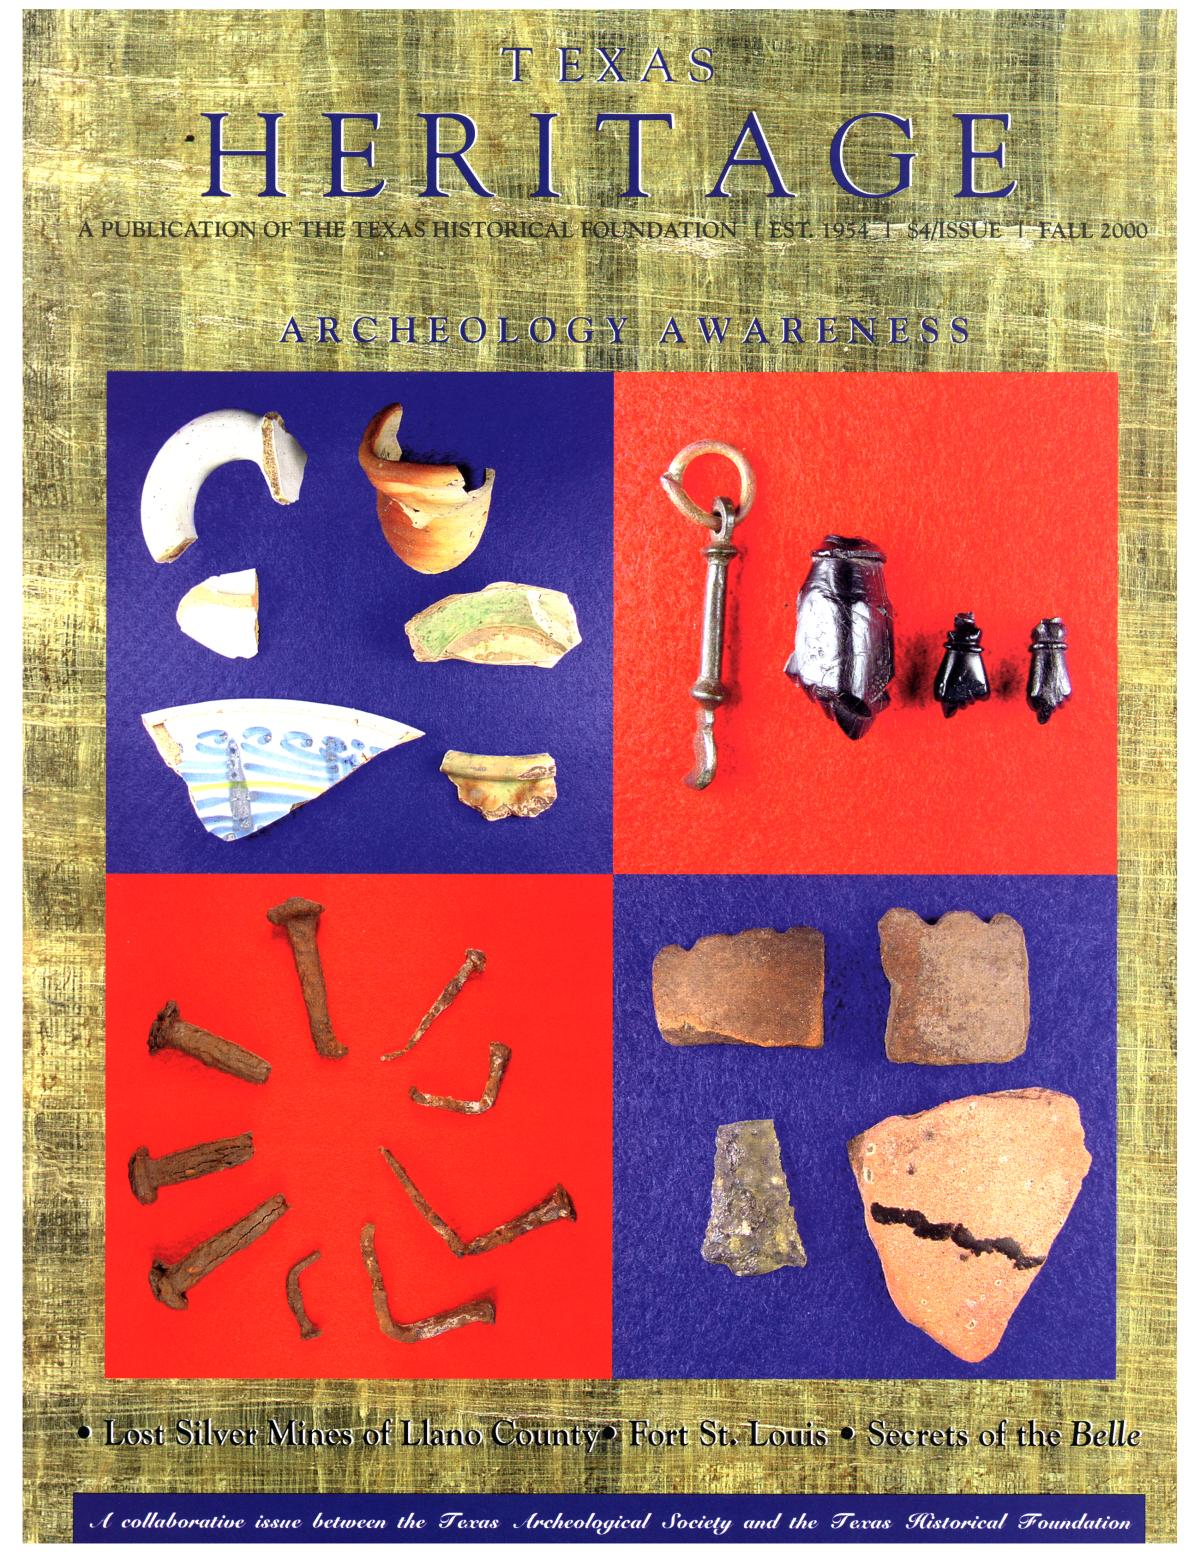 Texas Heritage, Volume 18, Number 4, Fall 2000                                                                                                      Front Cover